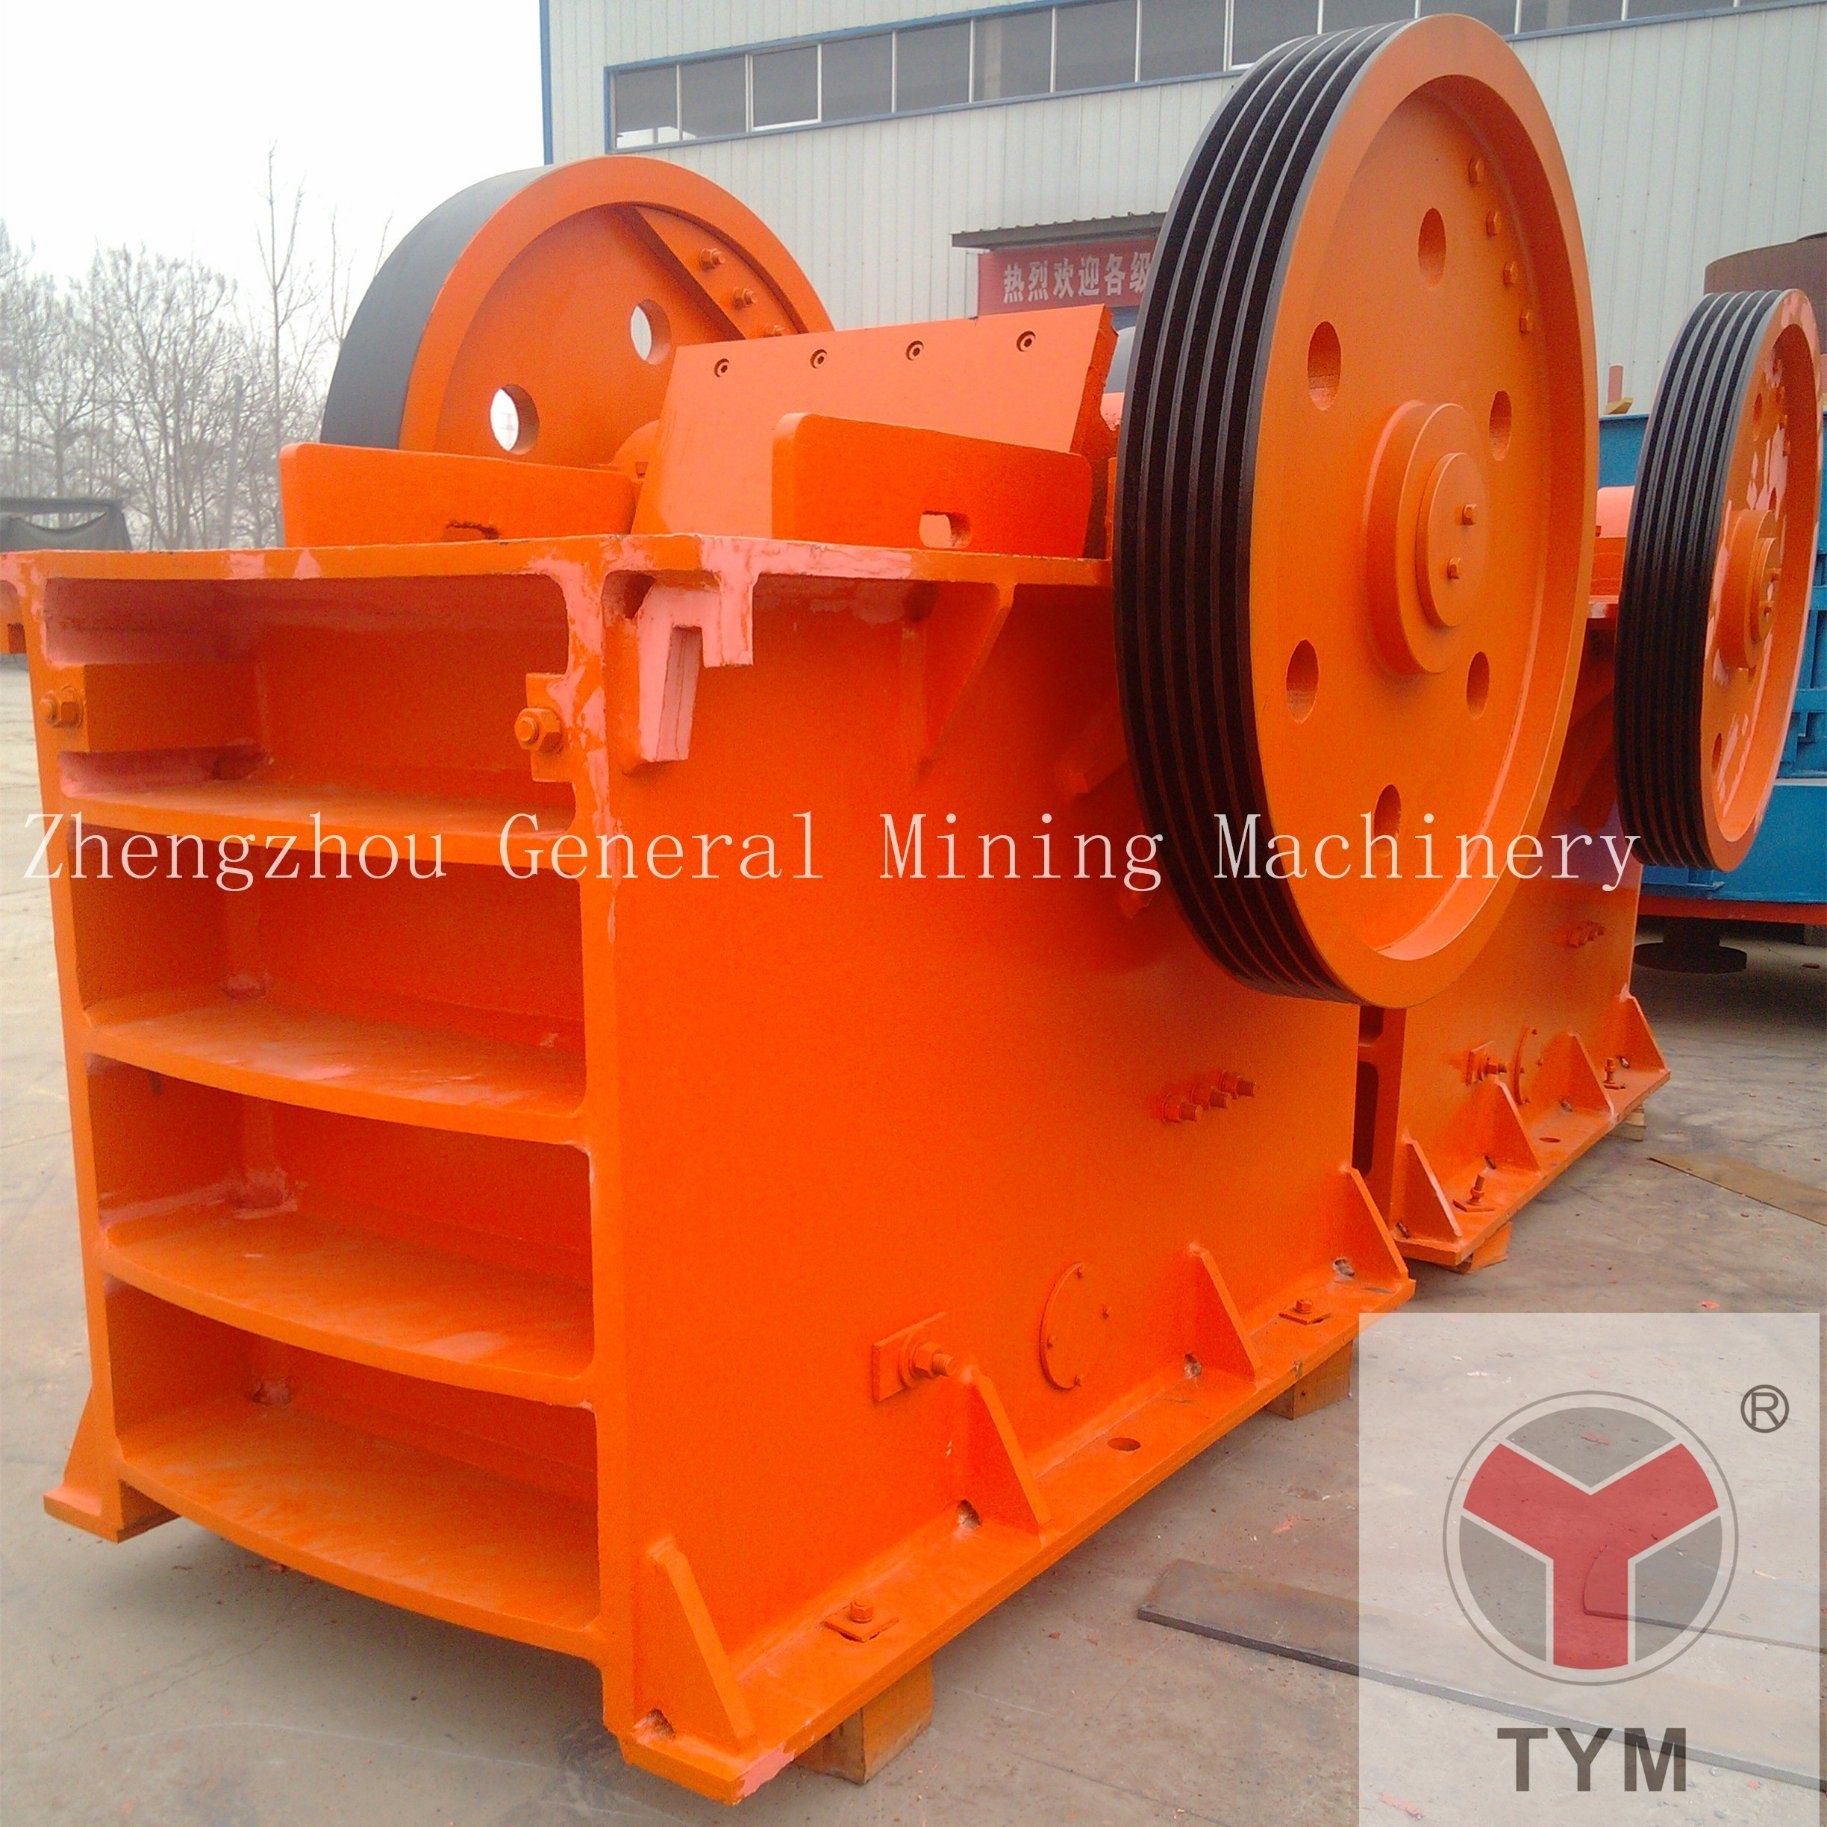 2017 Hot Sale PE Diesel Jaw Crusher Manufacturer in Zhengzhou